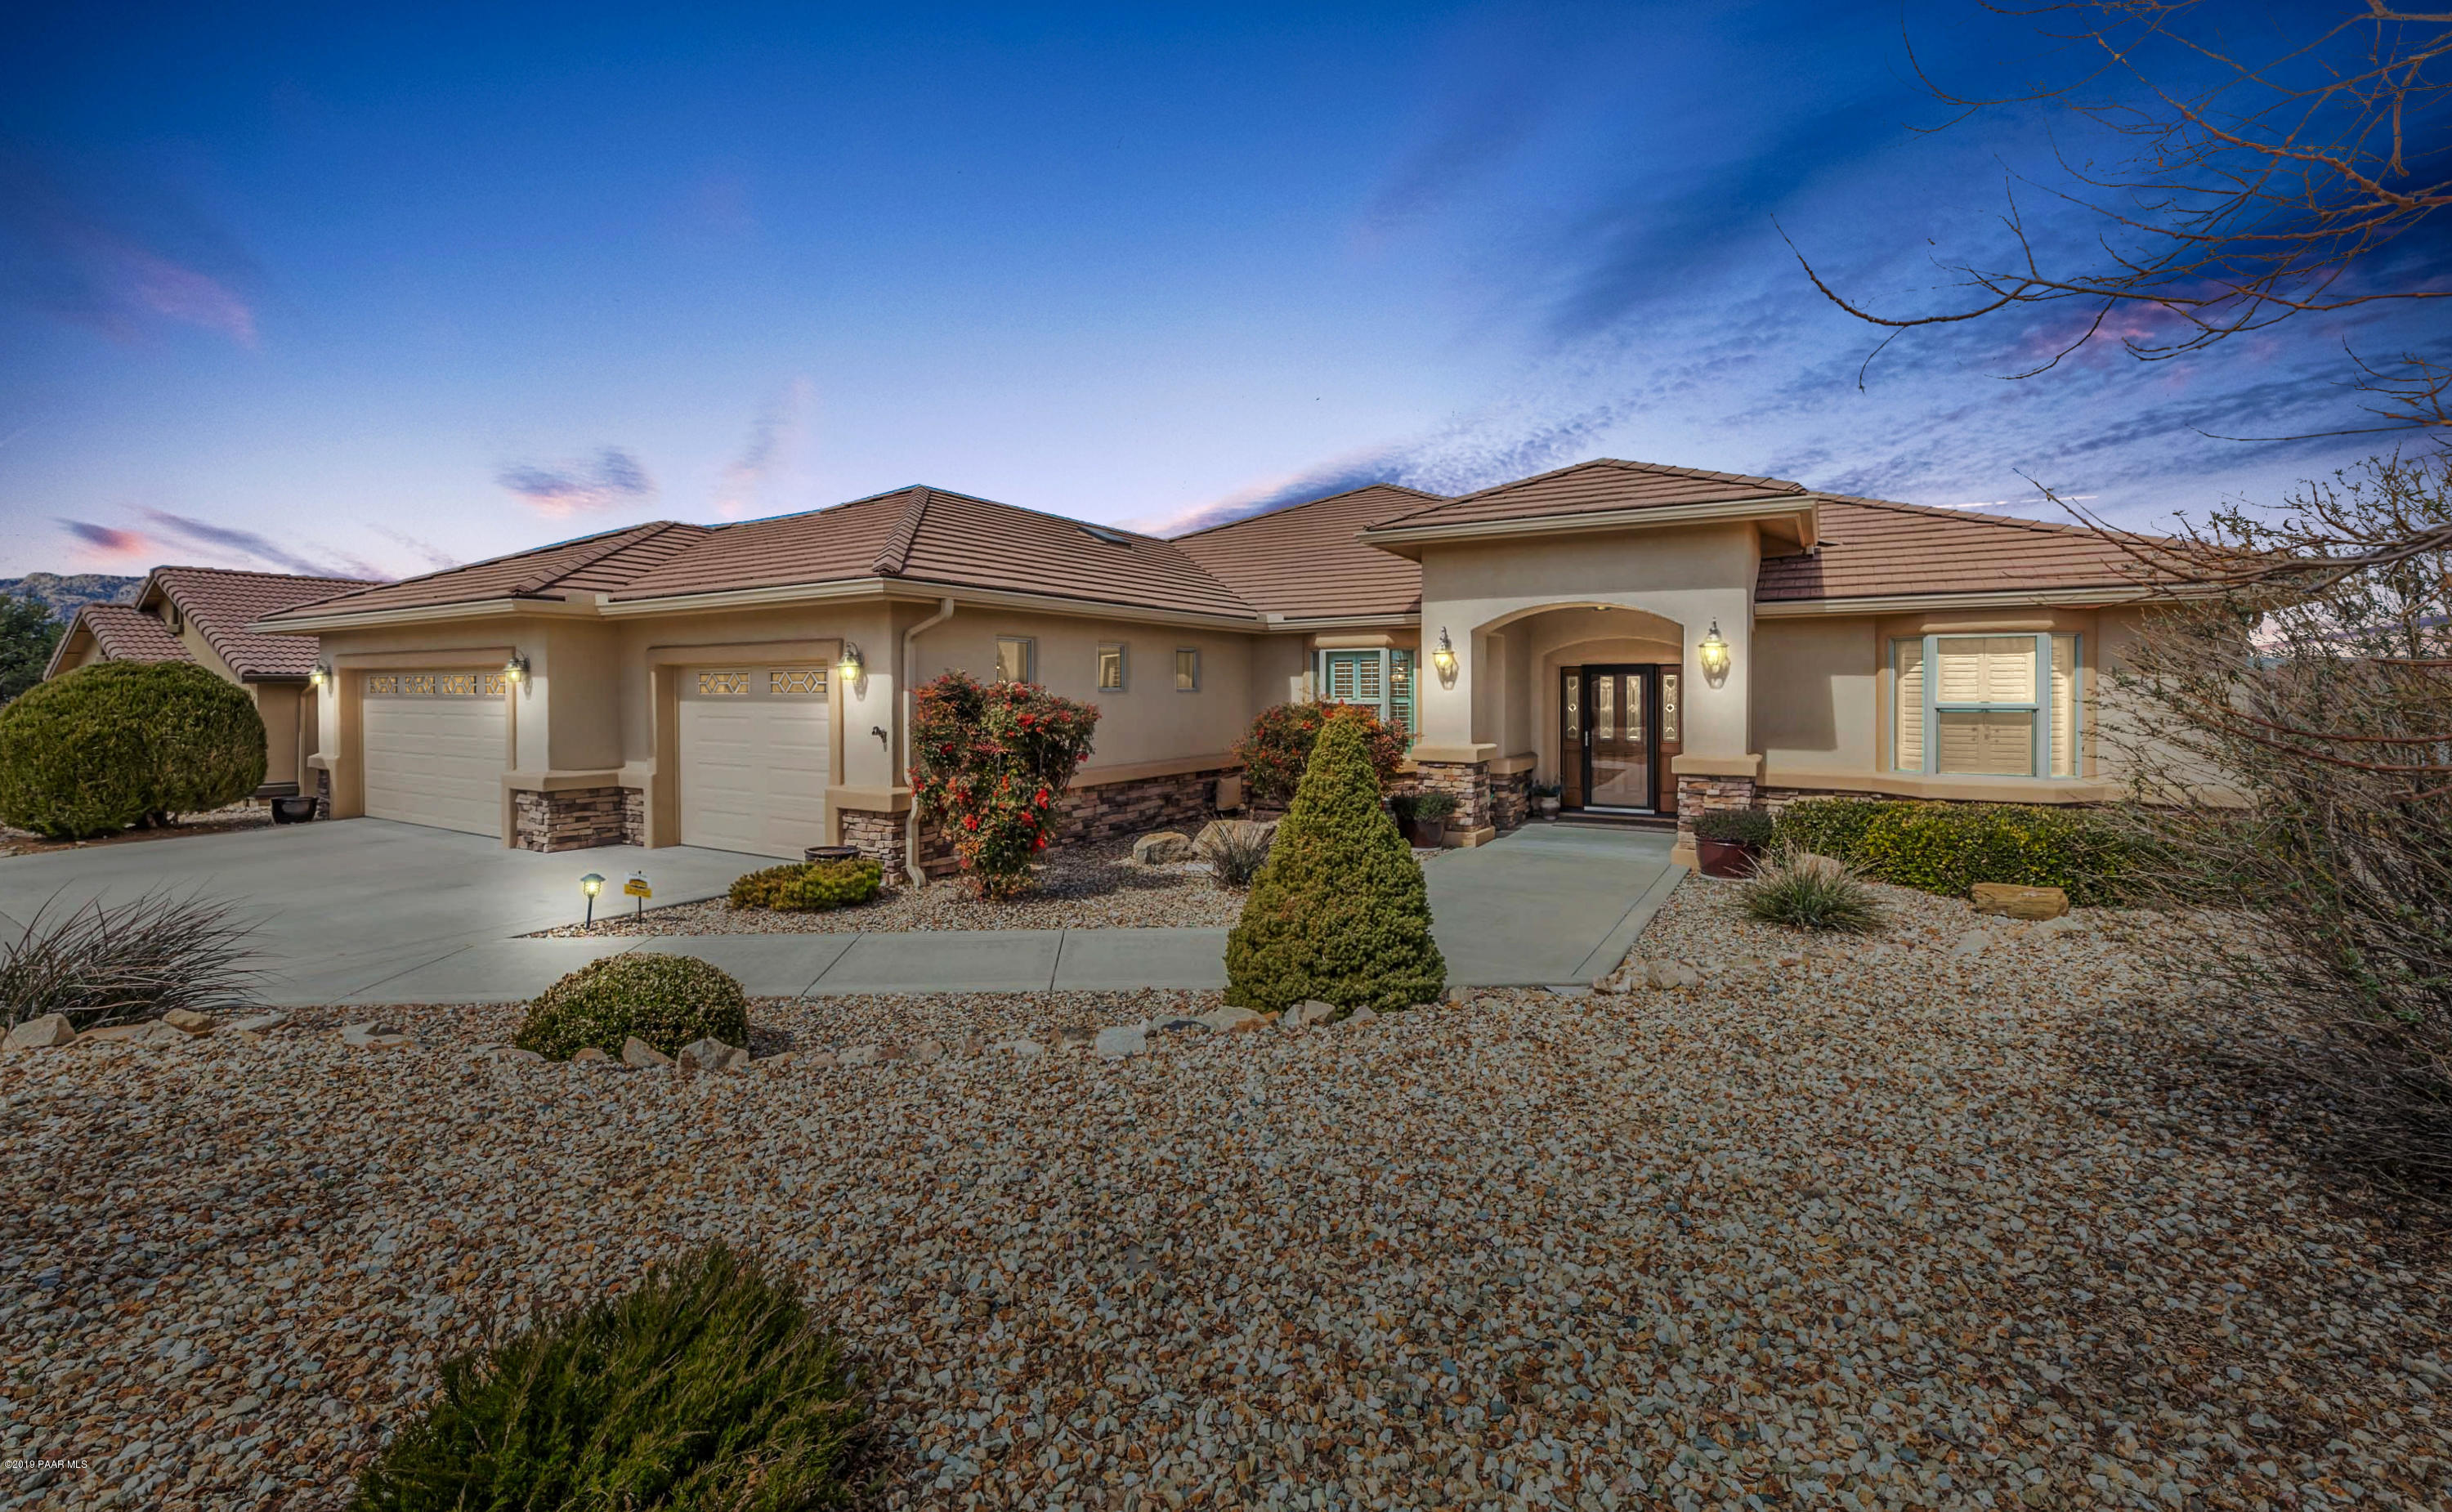 778 Panicum Drive Prescott Joe Karcie Featured Properties for Sale Prescott AZ Real Estate - Joe Karcie REALTOR RE/MAX Mountain Properties Your Source for Buying and Selling Real Estate in the Prescott Area.